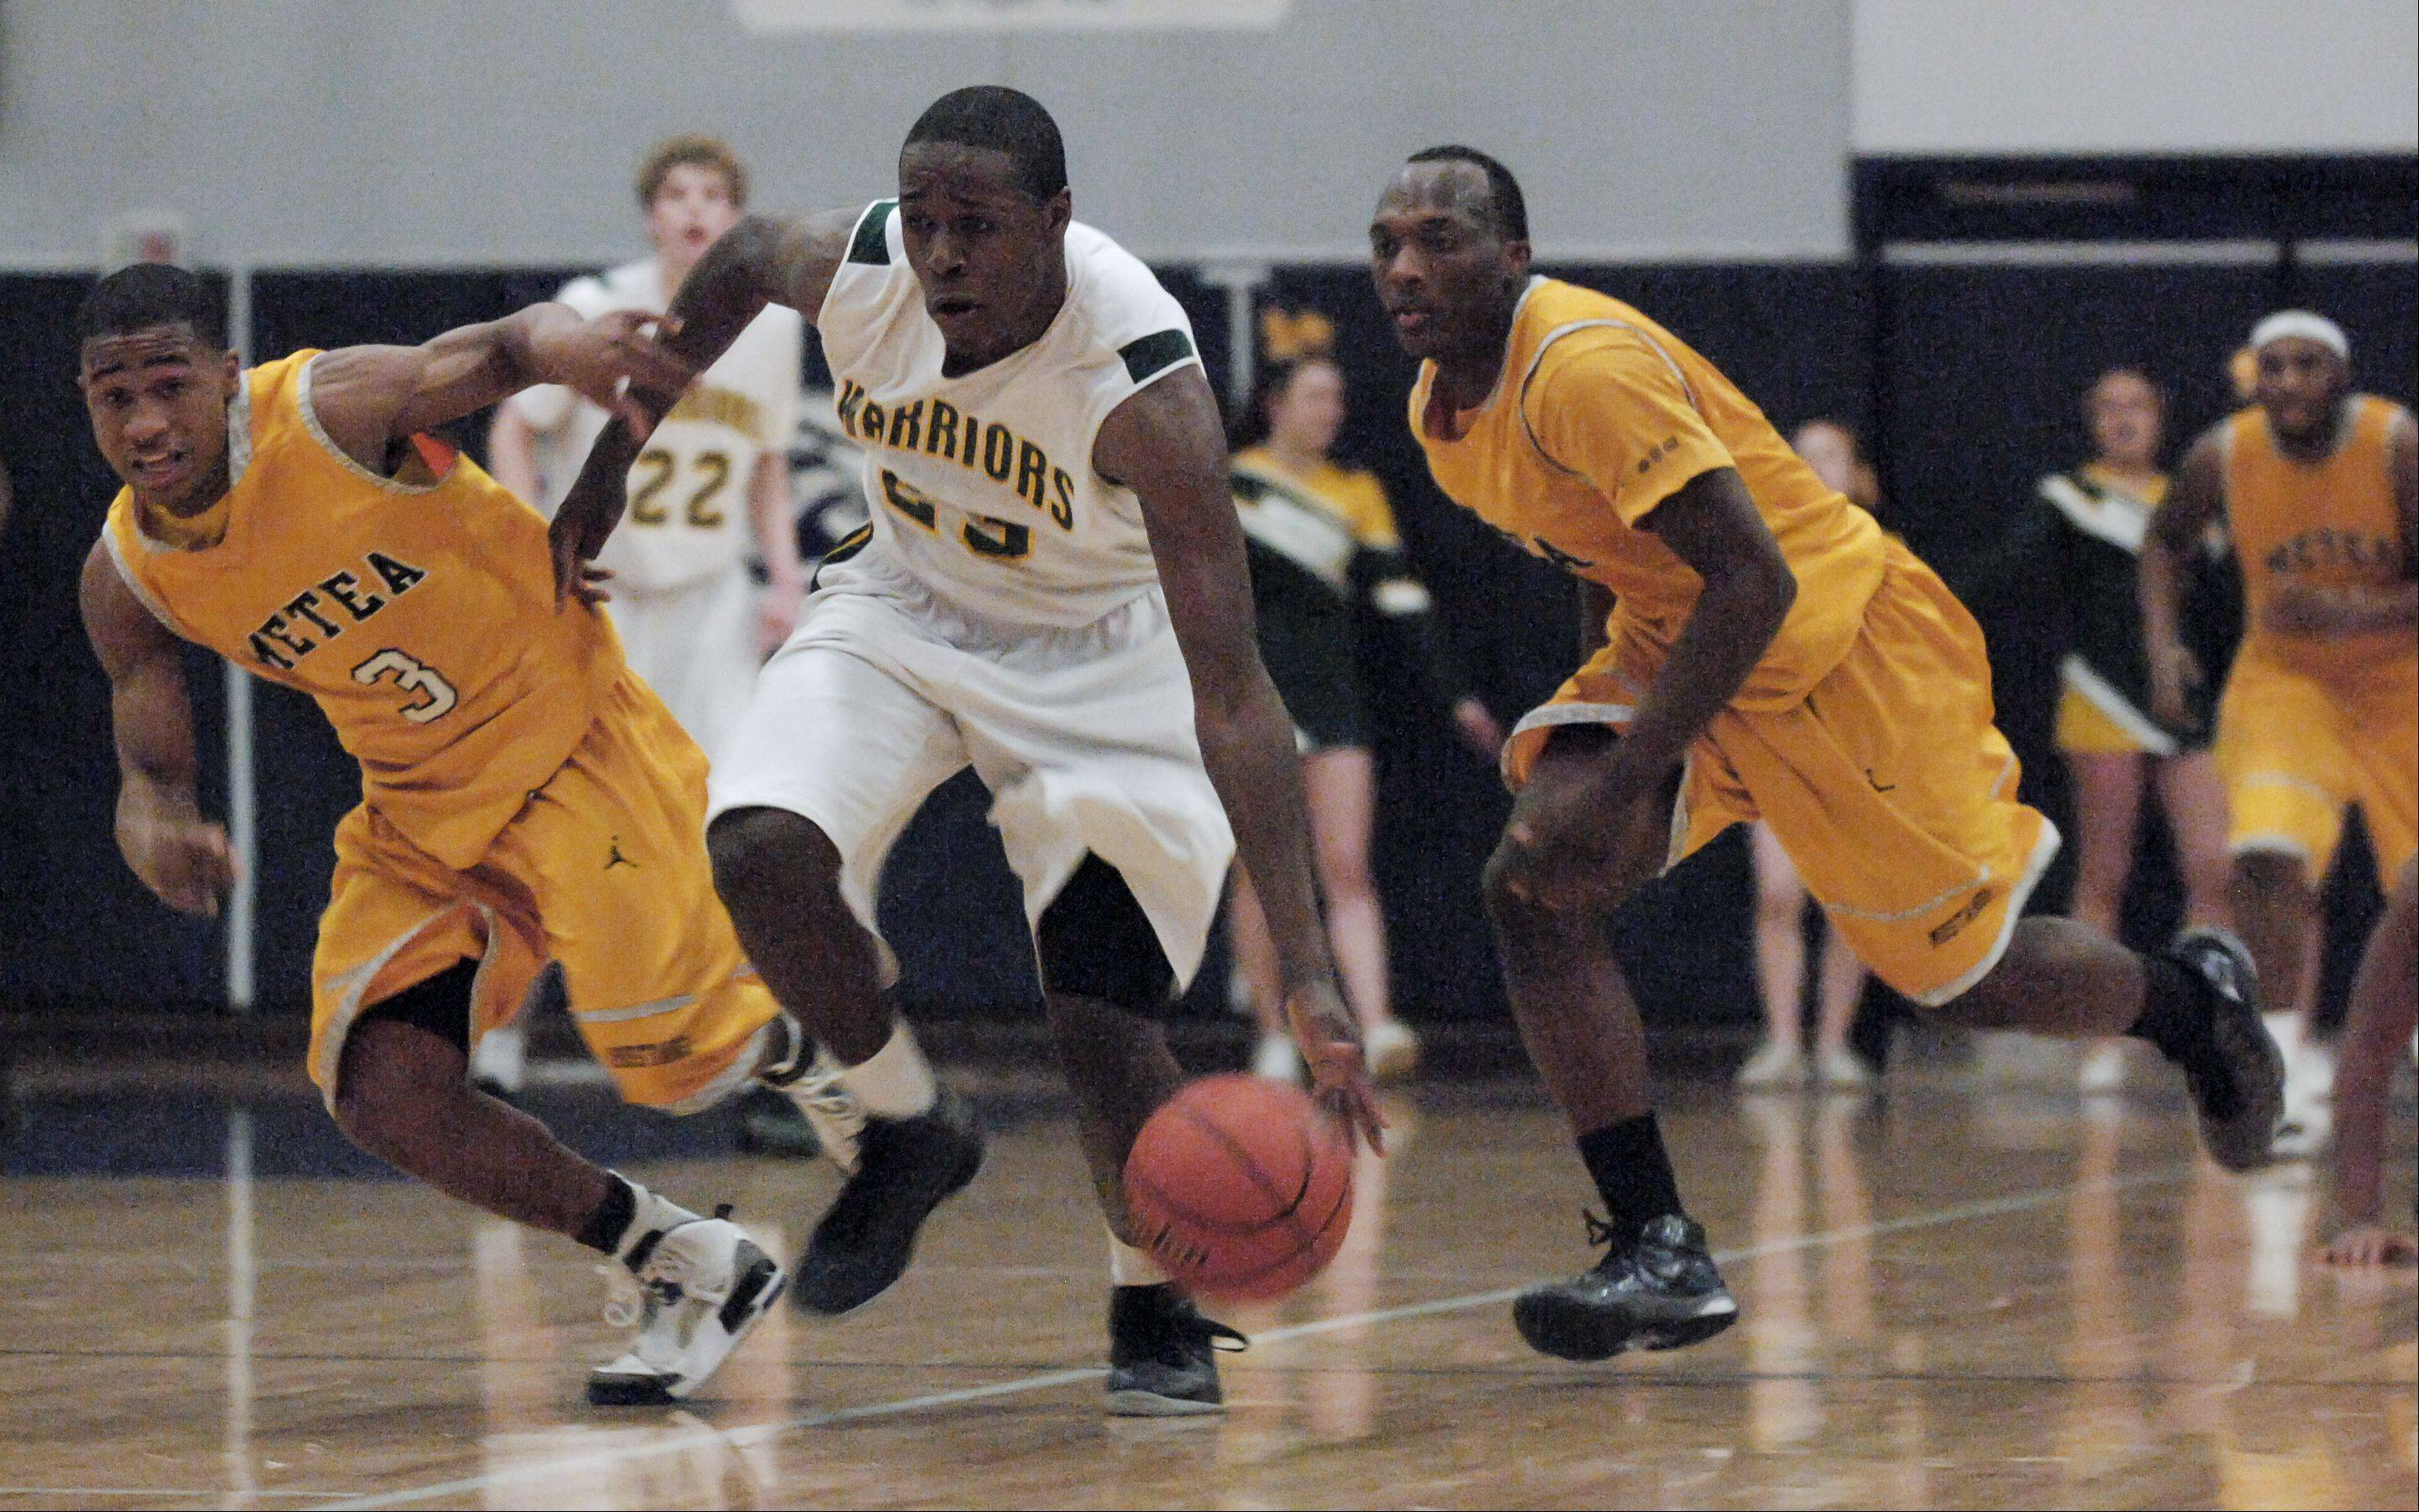 Images: Waubonsie Valley vs. Metea Valley, boys basketball